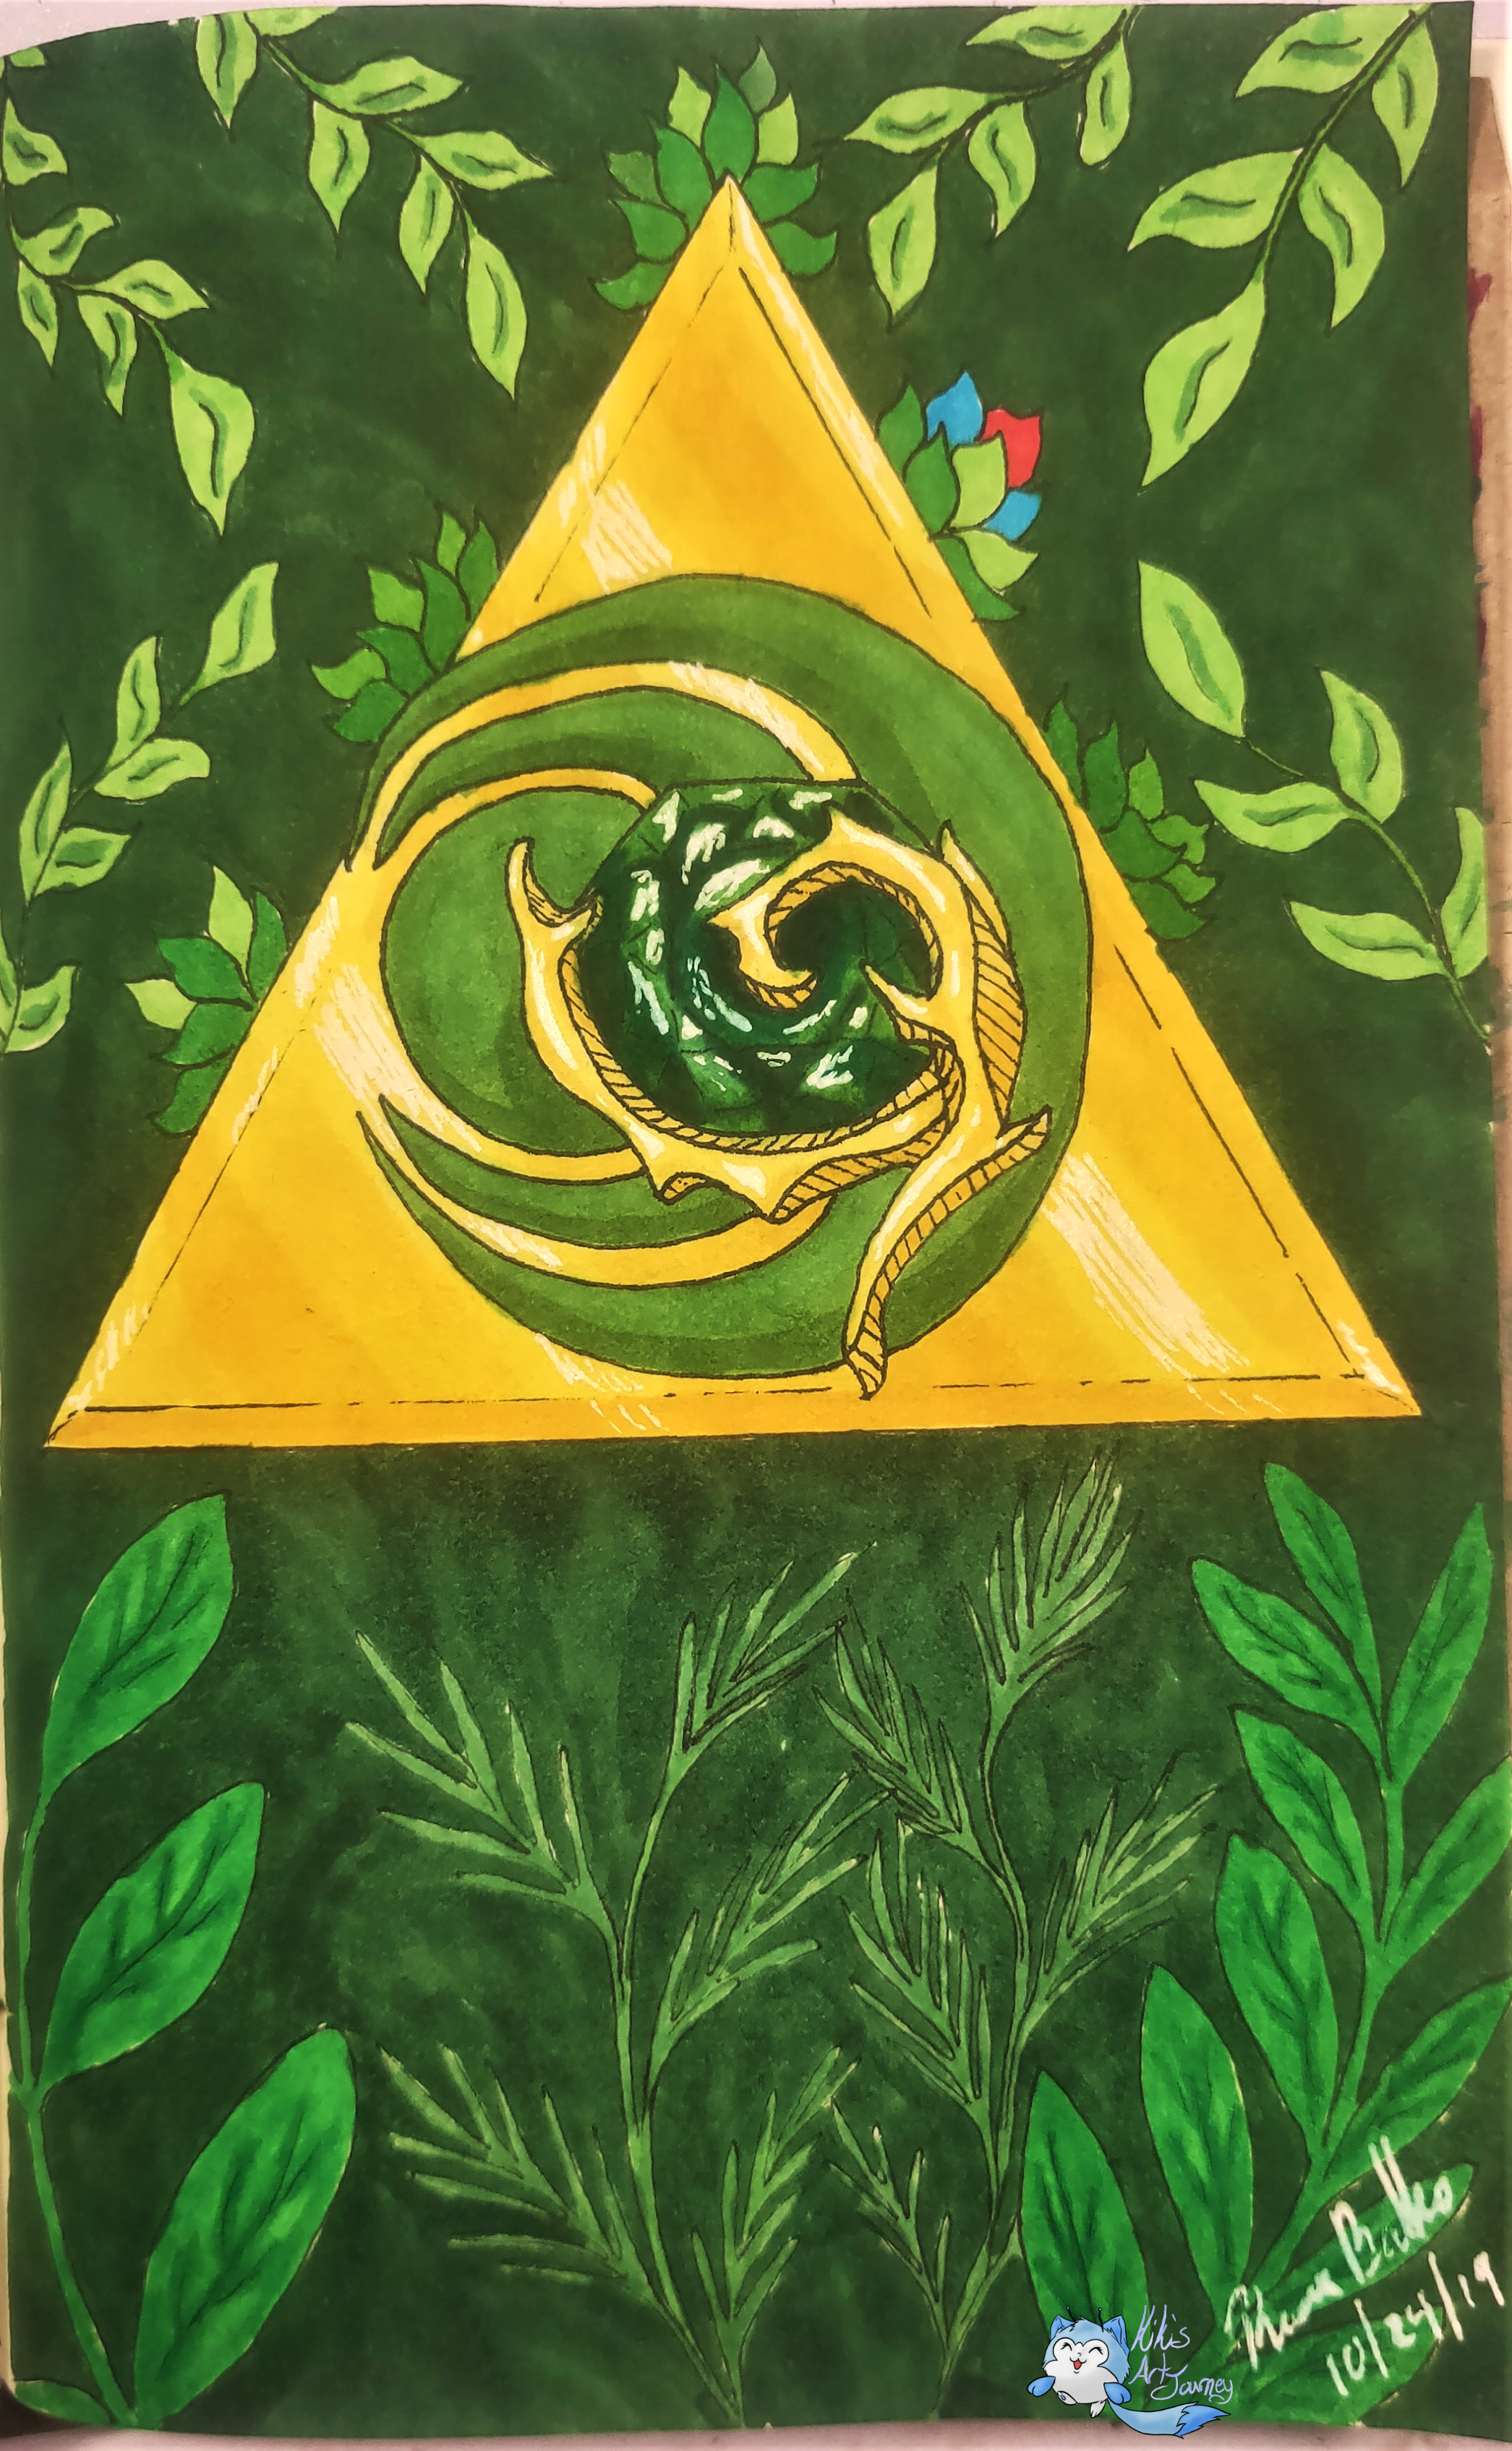 Linktober Day 28 Courage